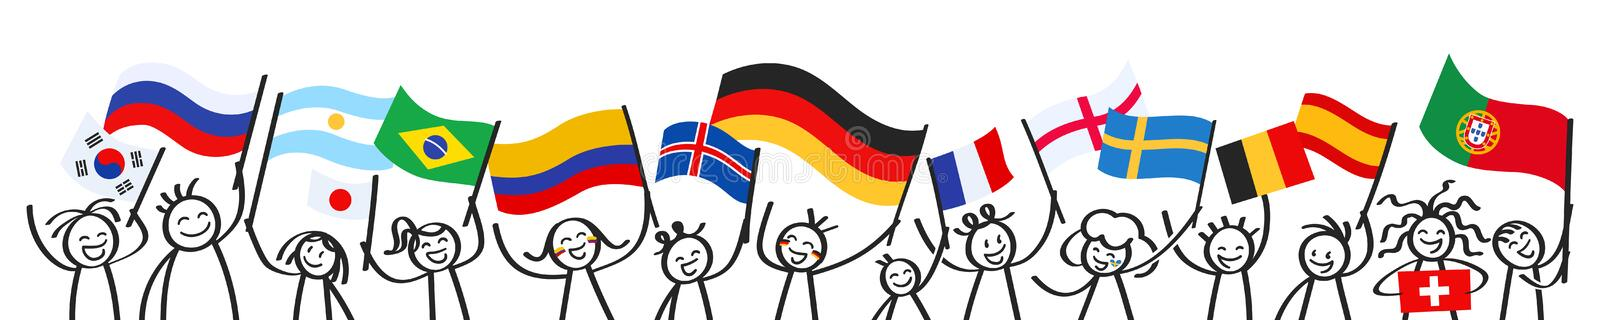 Supporters, sports fans, happy stick figures waving their respective national flags, horizontal banner. Isolated on white background royalty free illustration